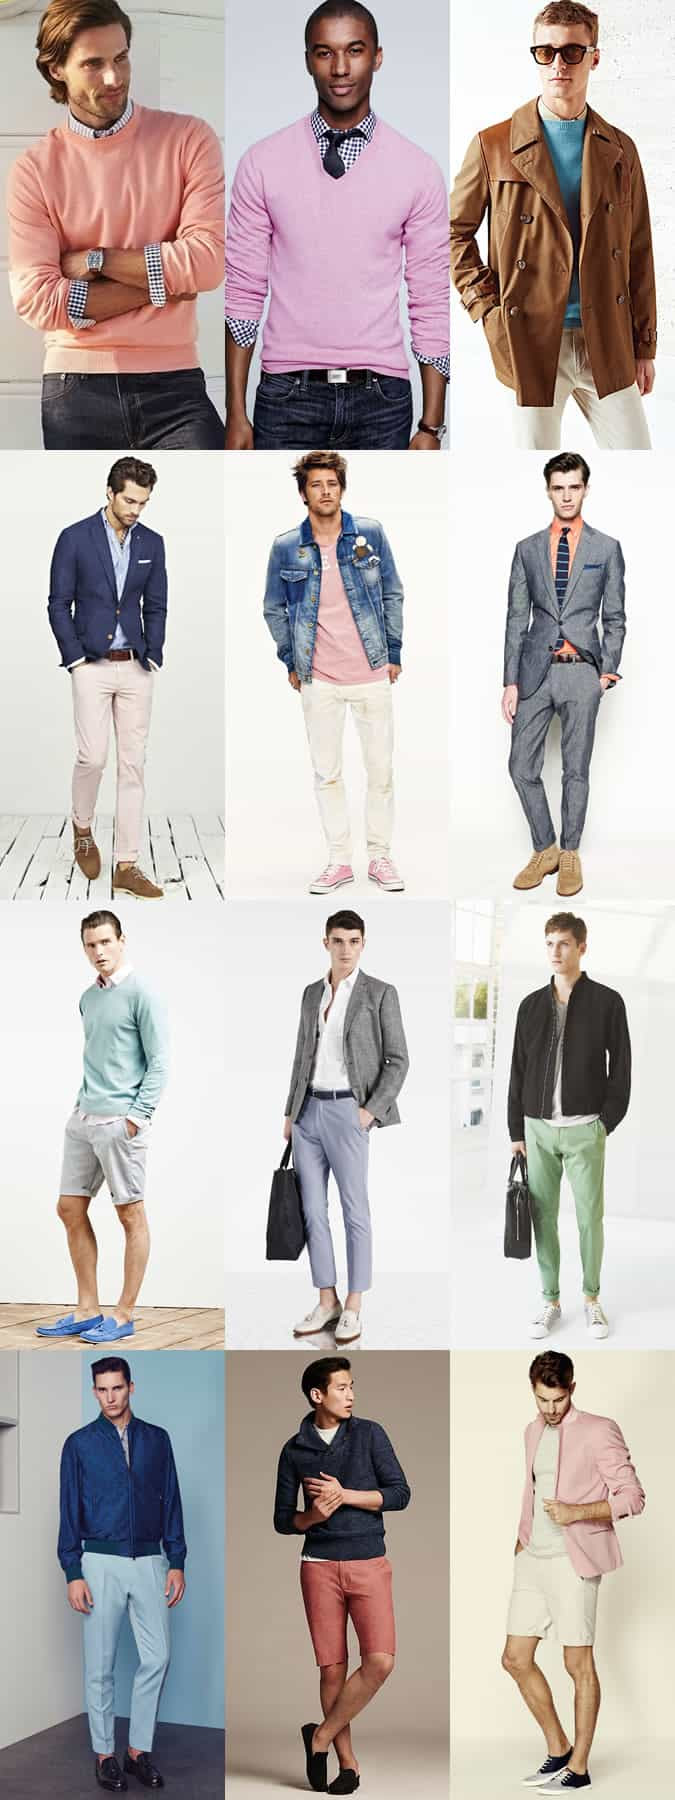 Men's Pastel Coloured Clothing - Outfit Inspiration Lookbook